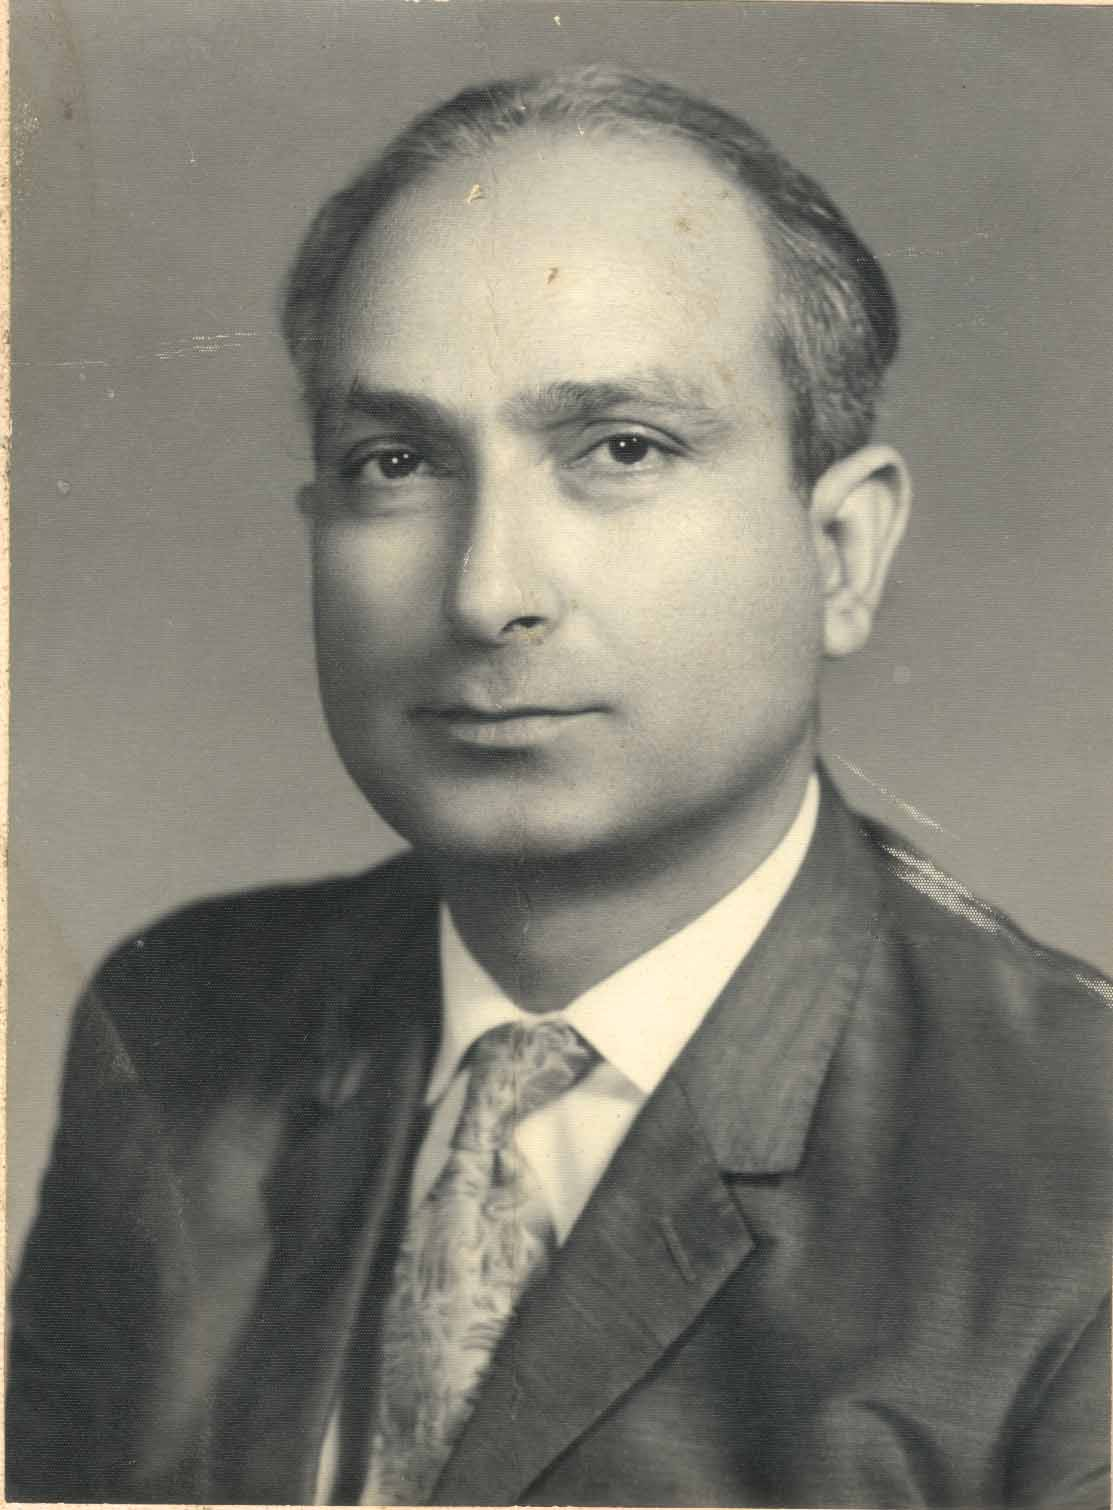 late Muhammad Hayat,Founder Editor,International Press Service.